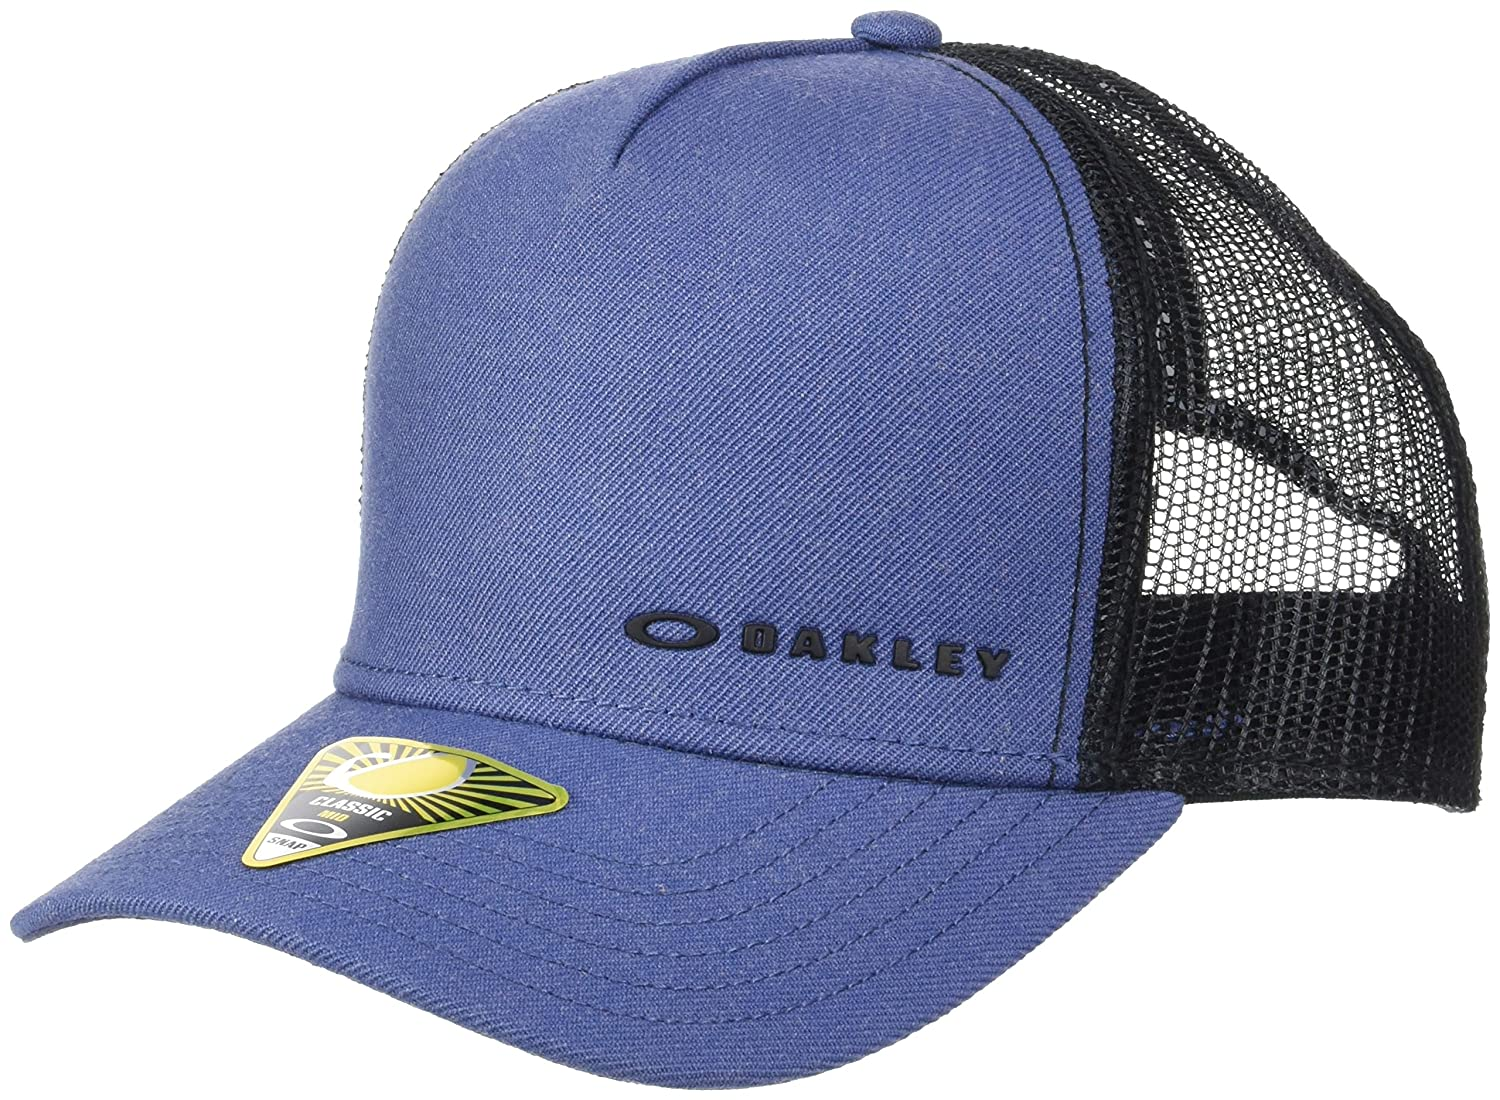 on sale 64d99 c1e01 Oakley Mens Chalten Adjustable Hat One Size Blue Indigo at Amazon Men s  Clothing store